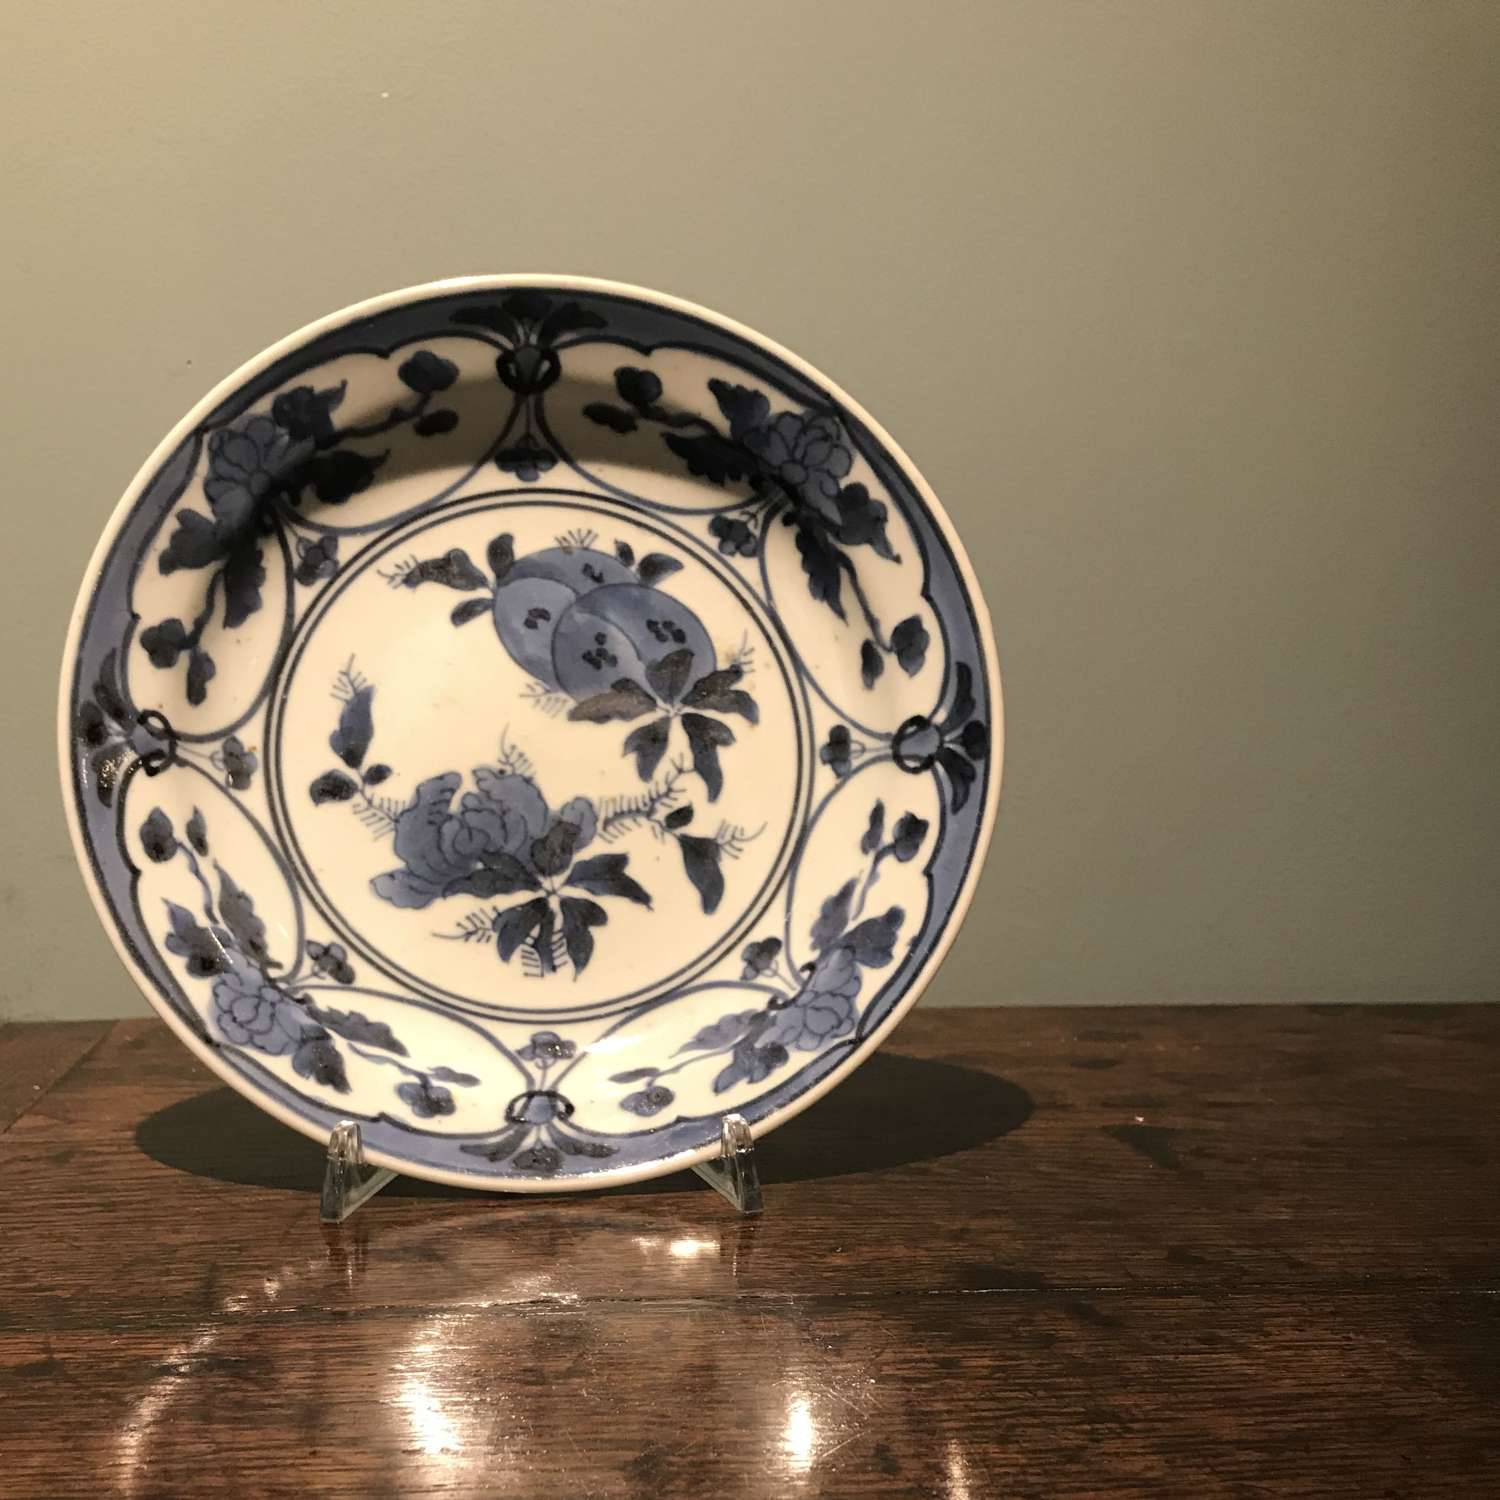 Genroku period Japanese blue and white plate c.1680